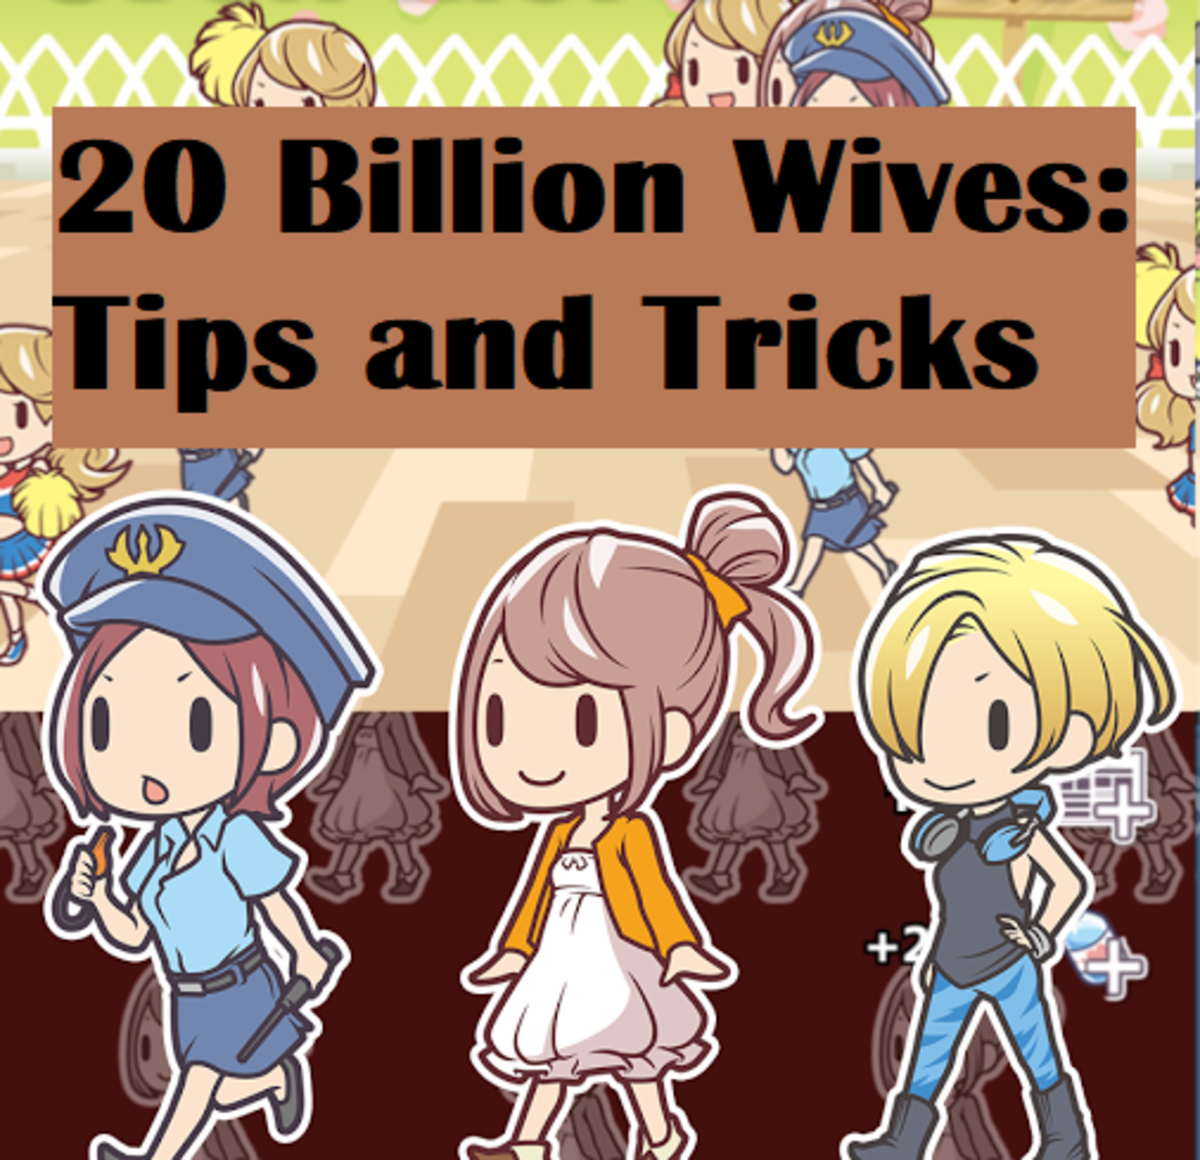 20 Billion Wives: Tips and Tricks Guide